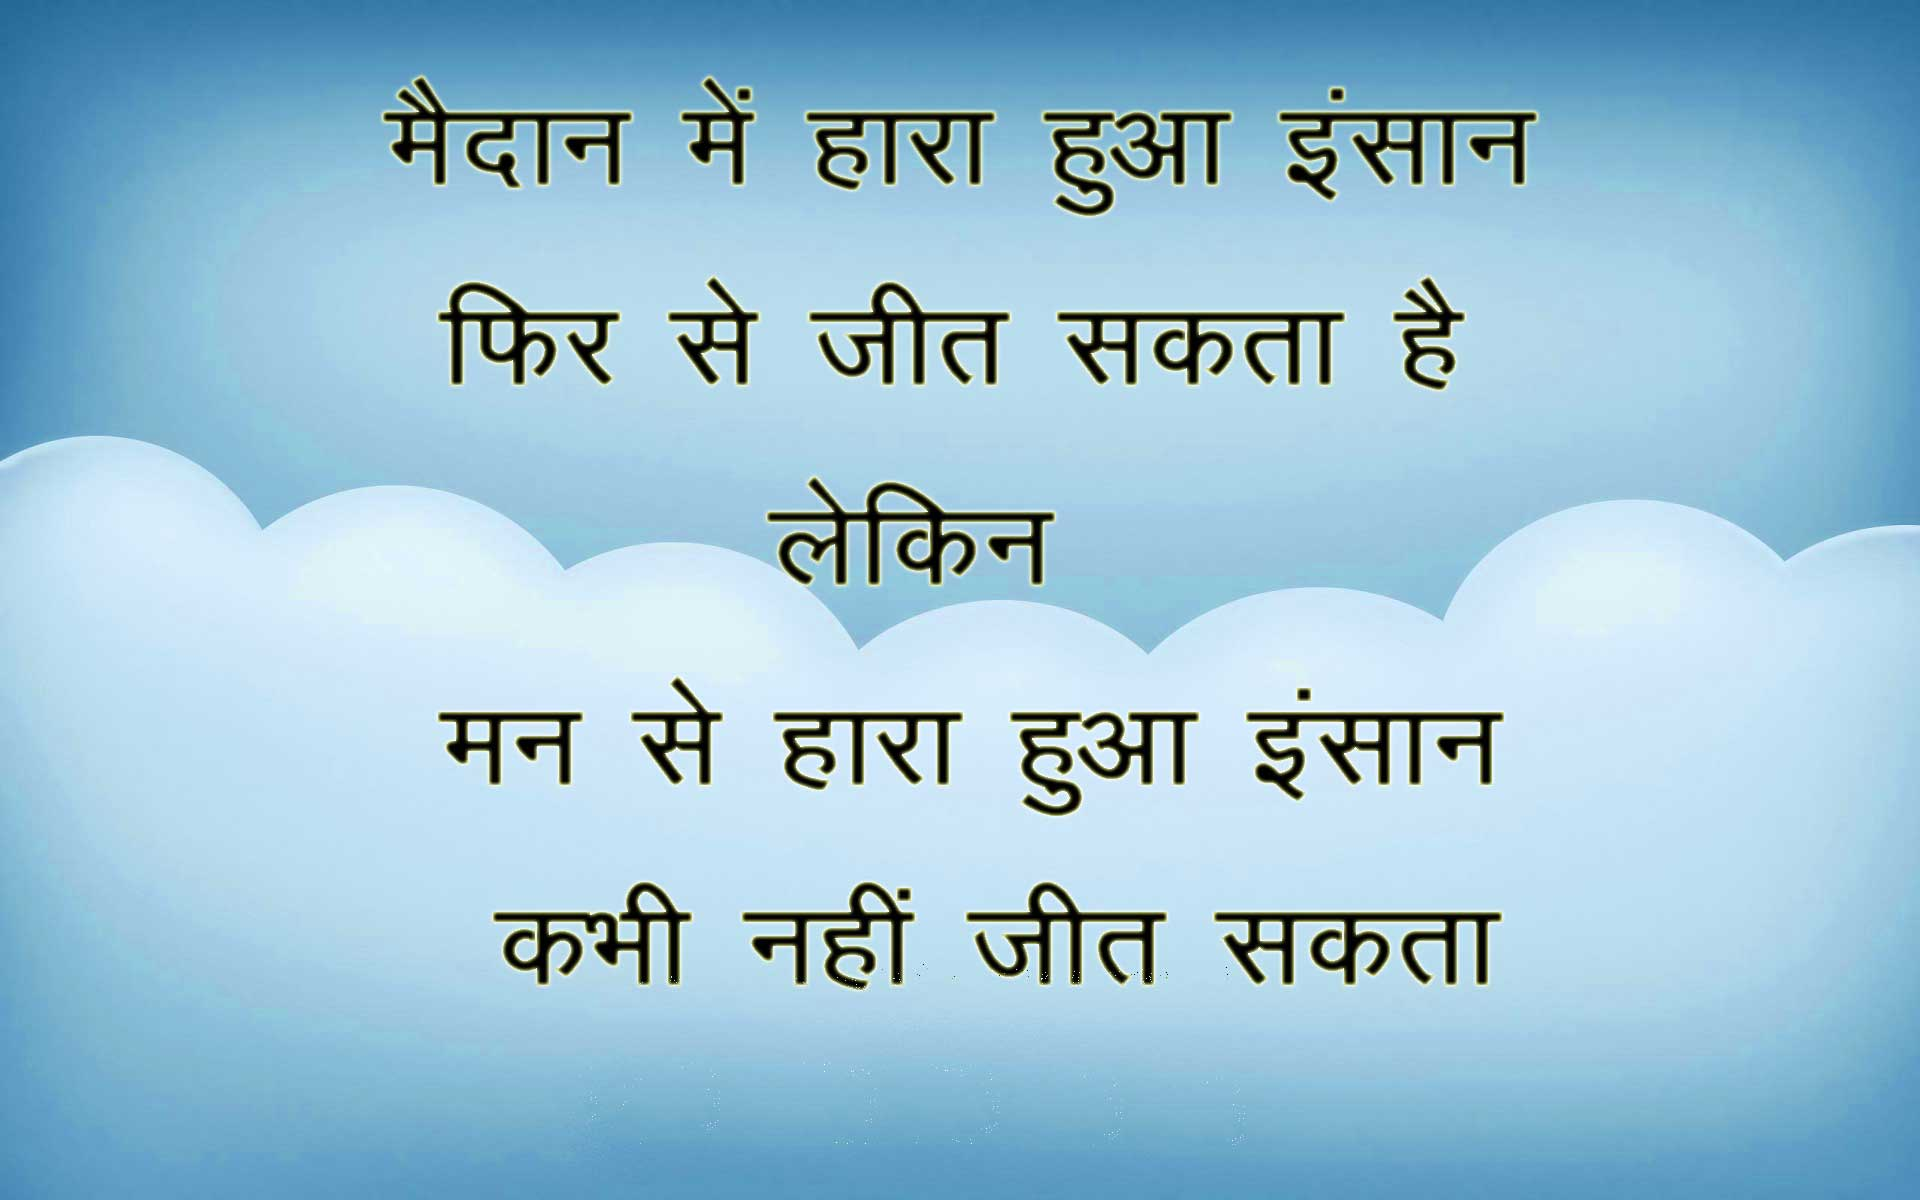 Life Quotes In Hindi For Whatsapp 2